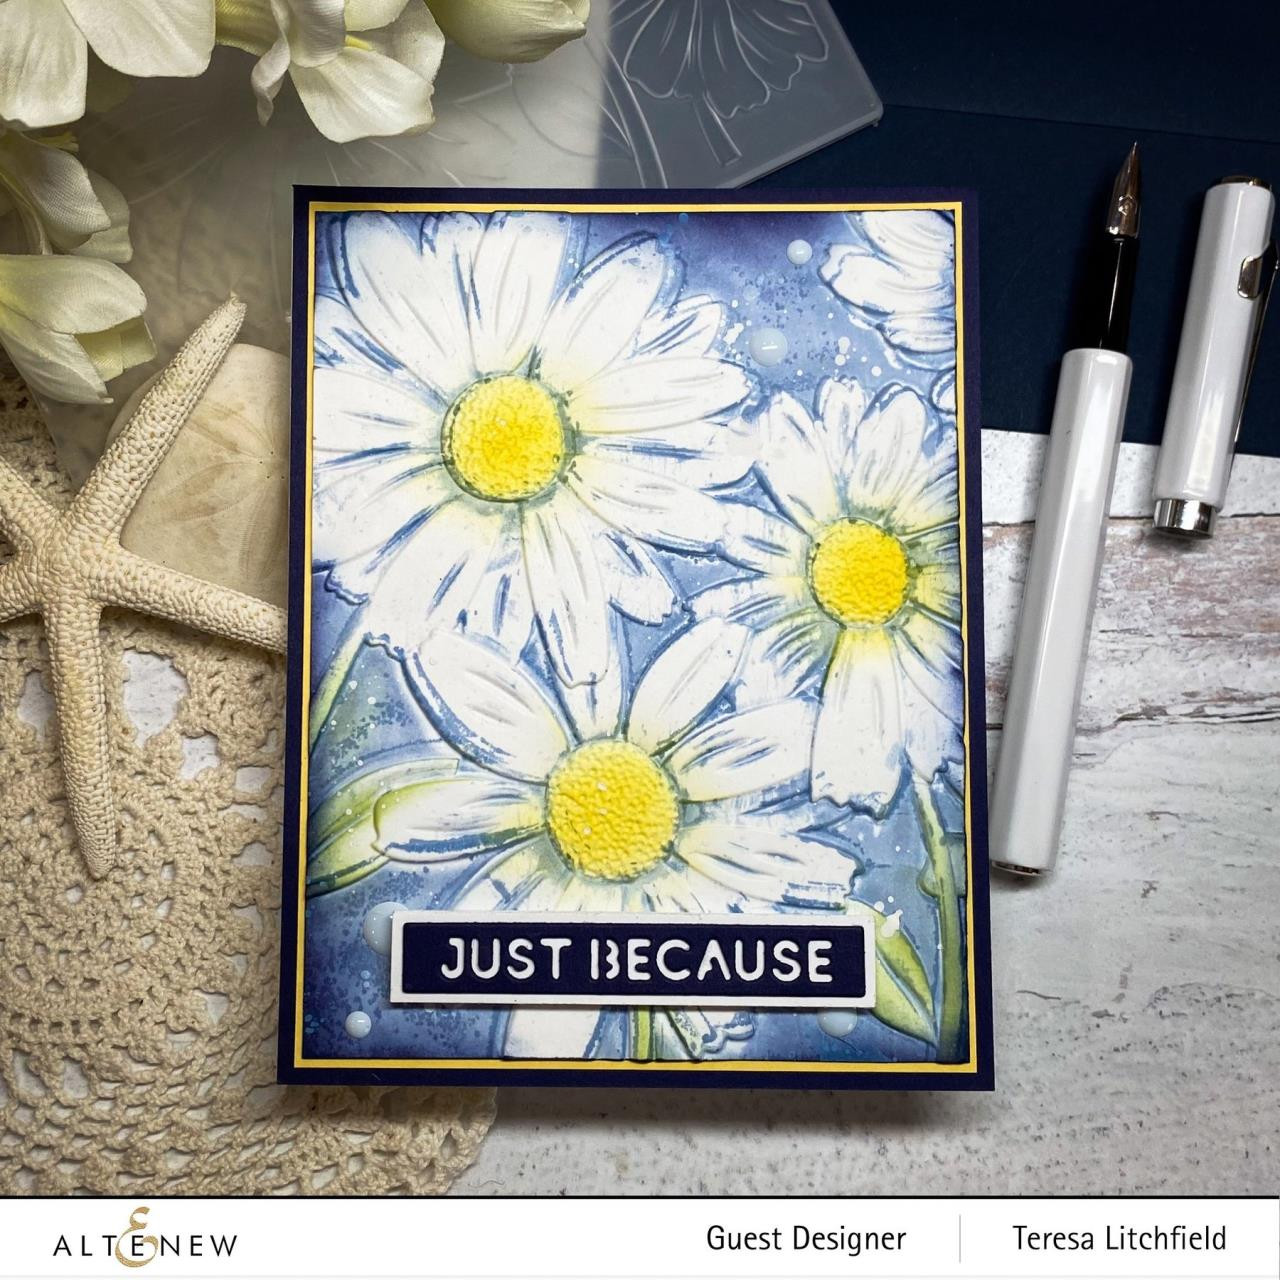 Daisies 3D, Altenew Embossing Folder -